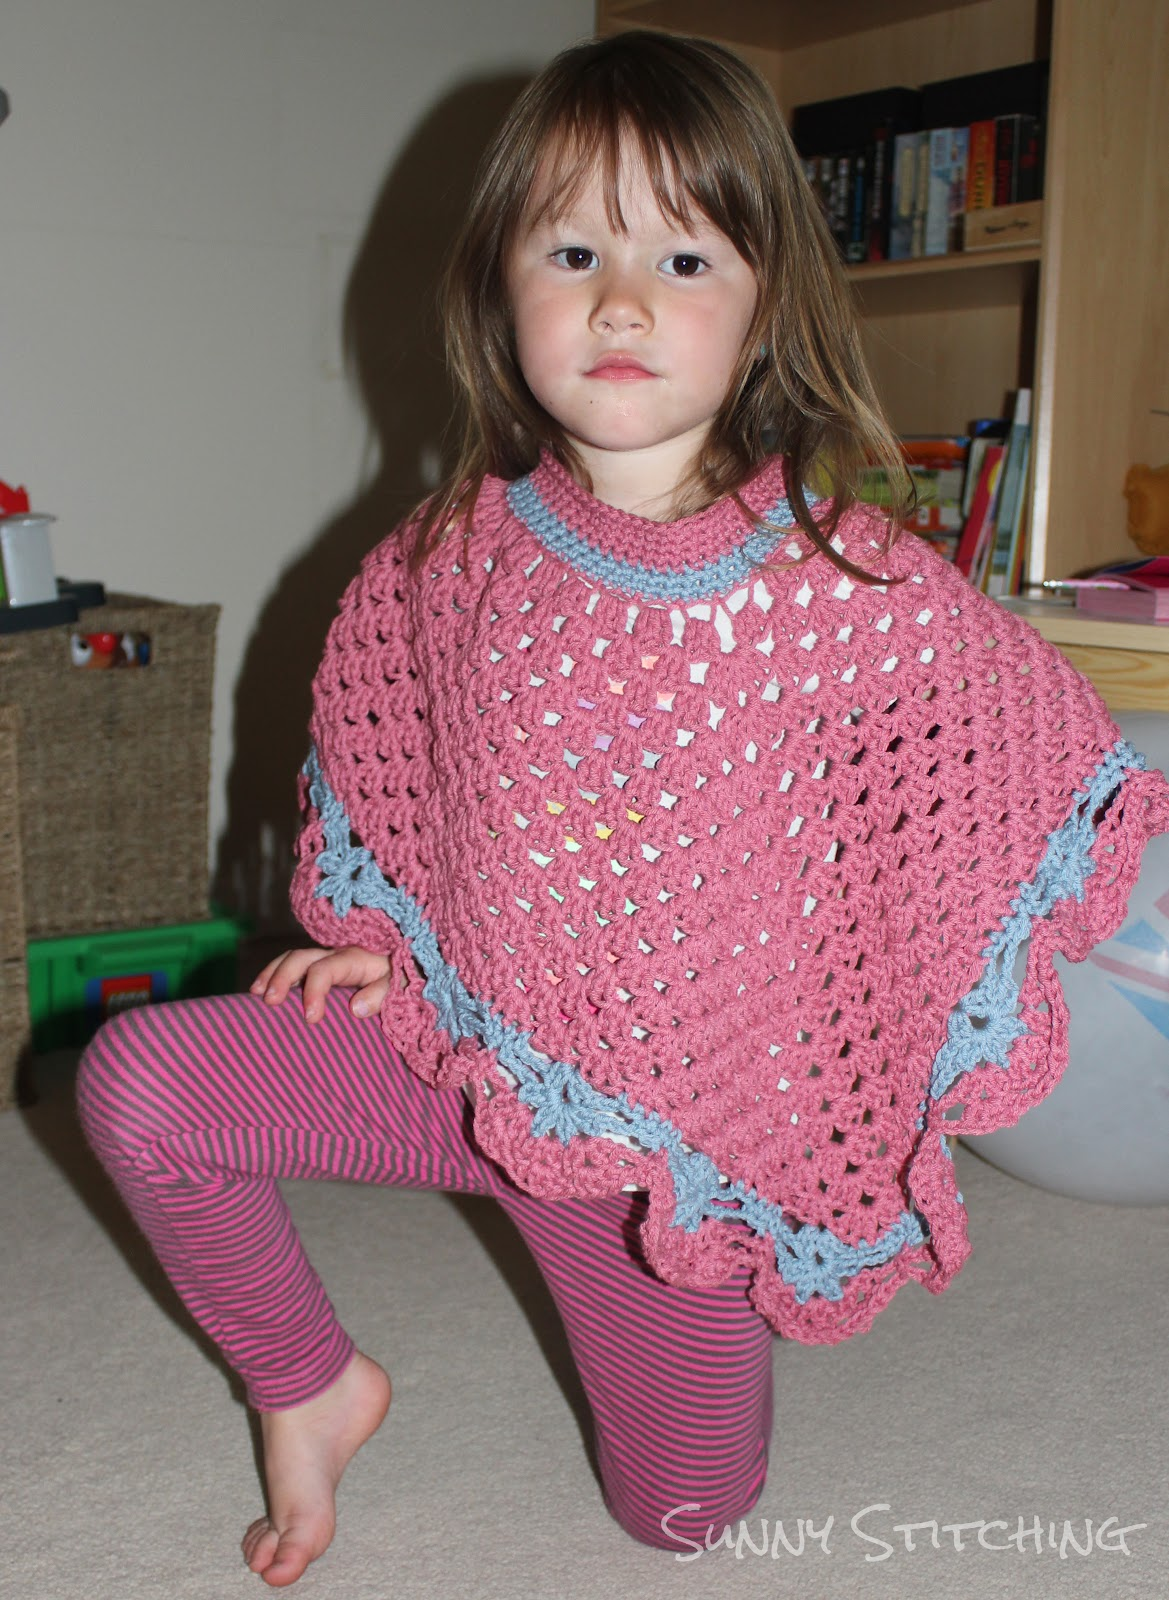 Free Crochet Poncho Pattern For Little Girl : Sunny Stitching: Coming Home Poncho